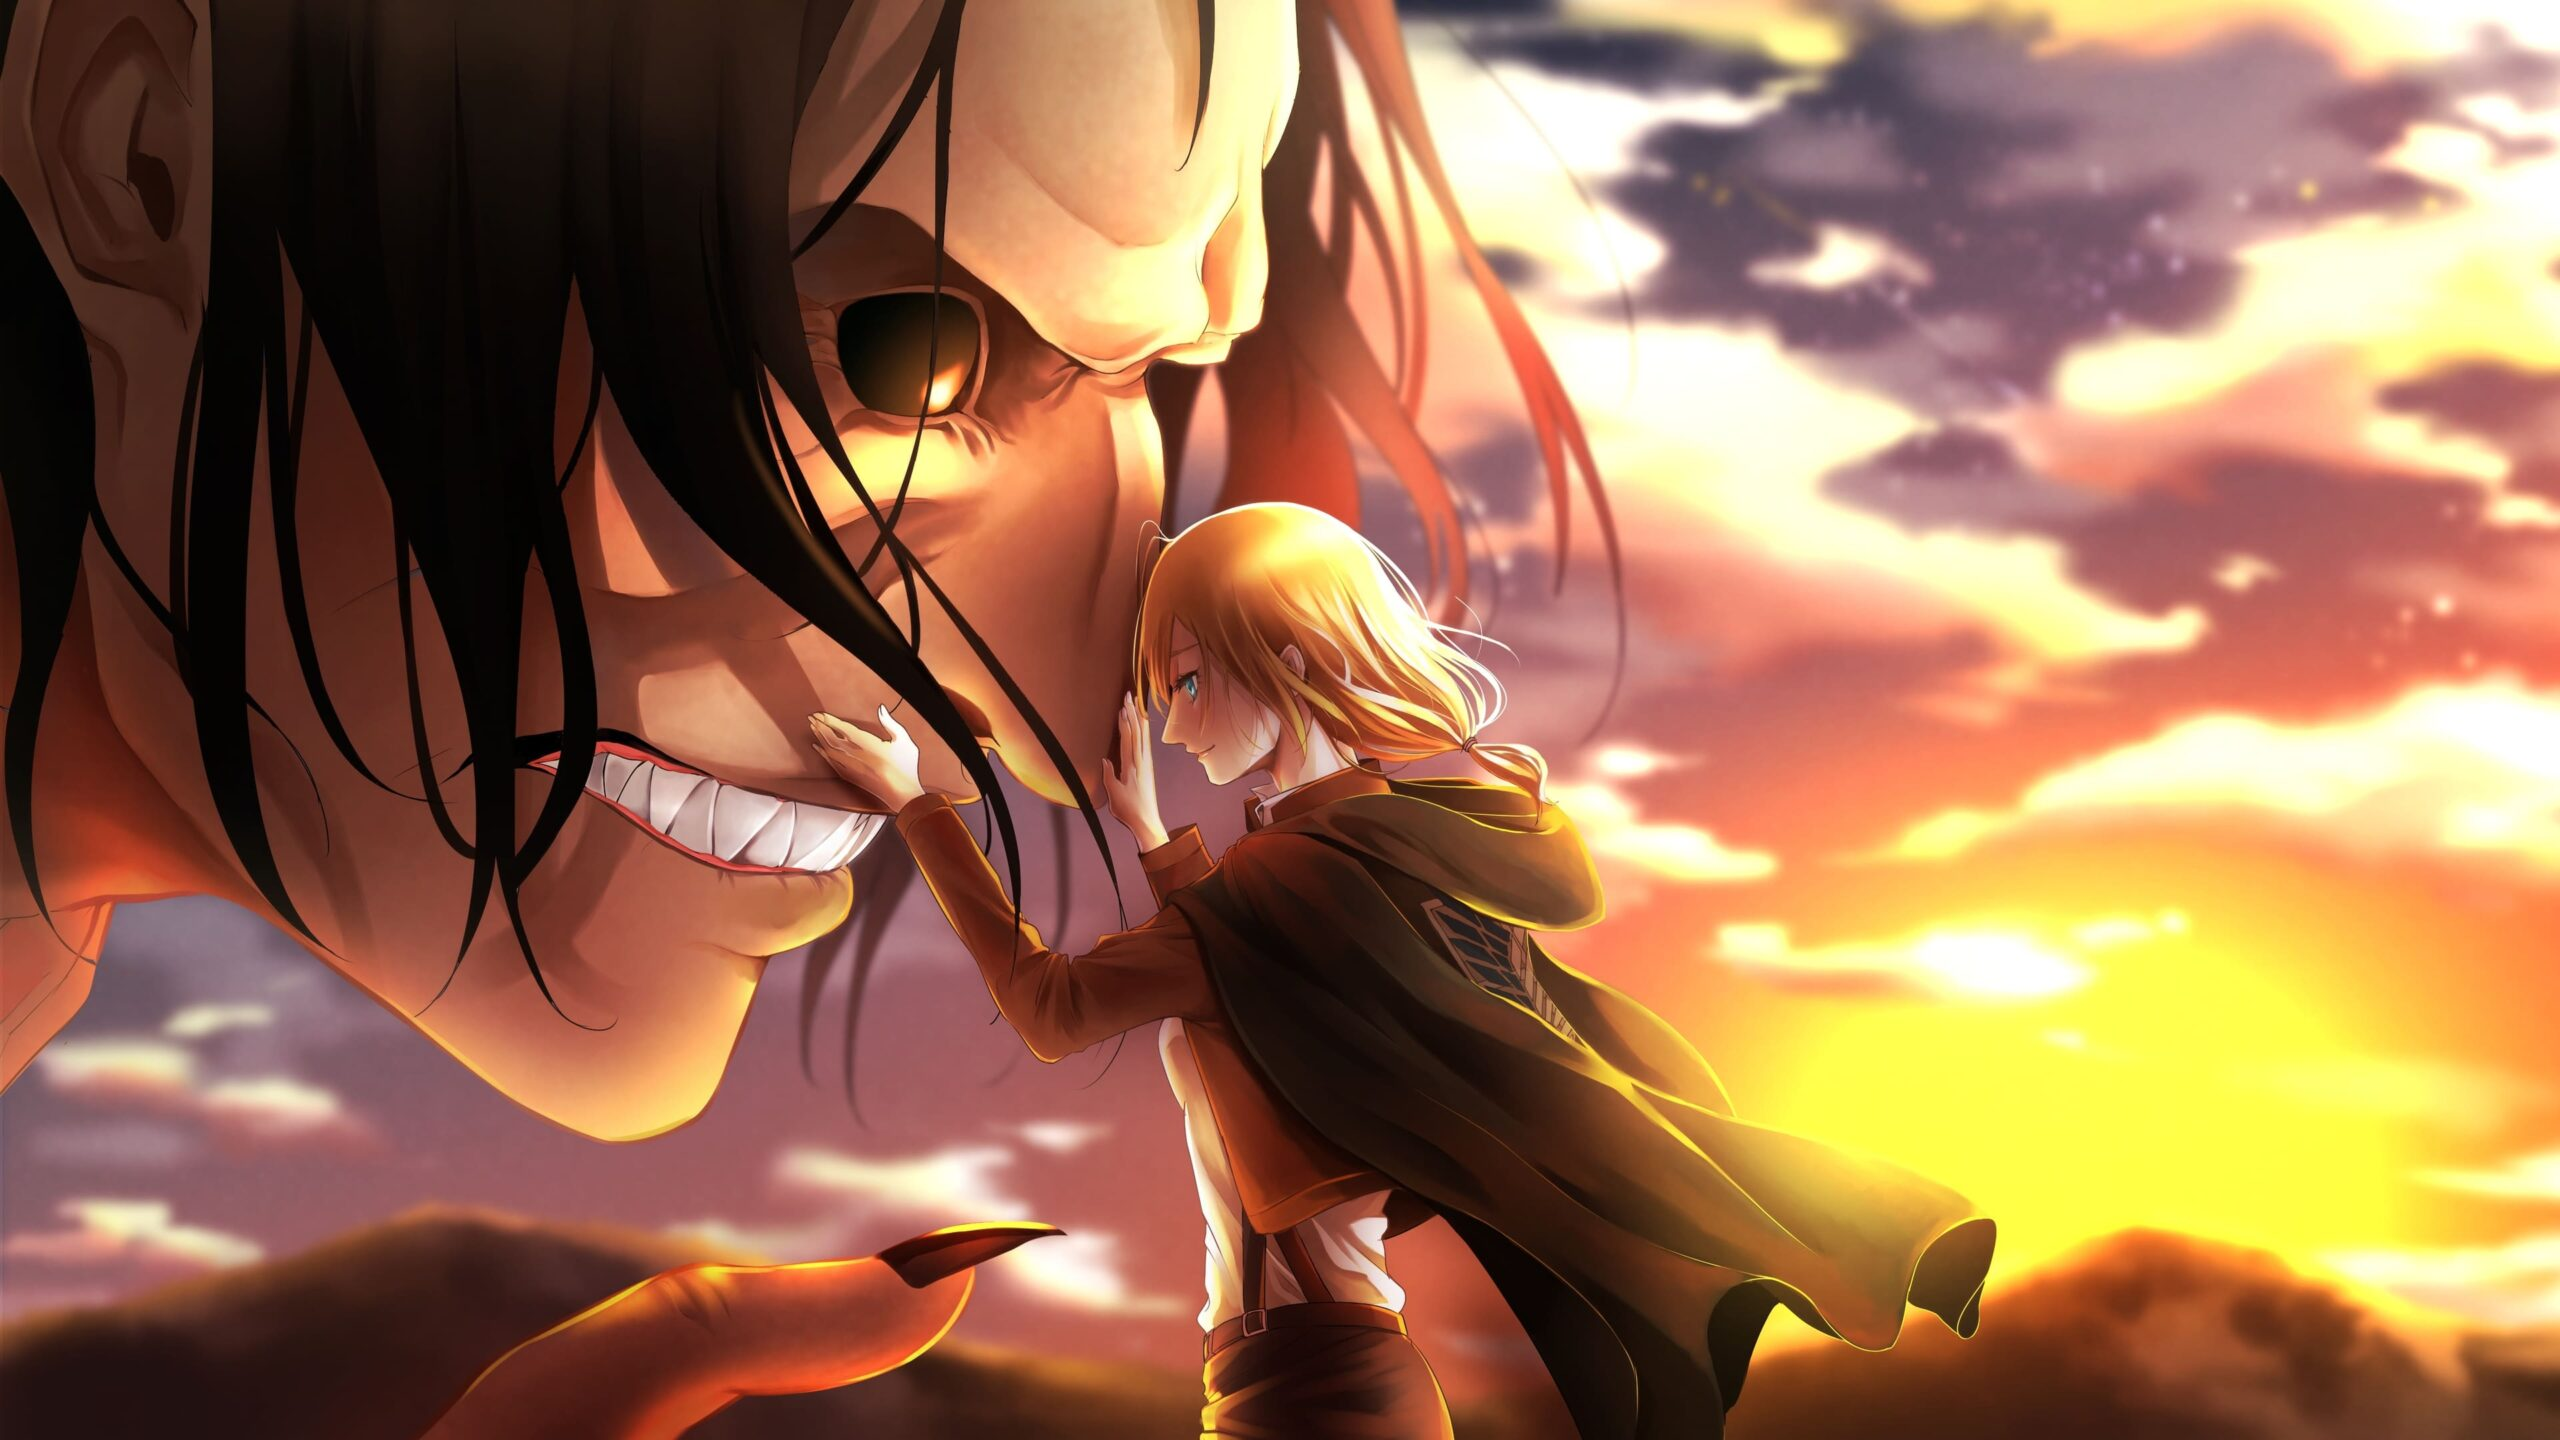 On april 15, 1912, the titanic entered history as one of the most notorious disasters at sea when the unsinkable ship struck an iceberg. Attack On Titan PC Wallpaper - Top Quality Attack On Titan ...